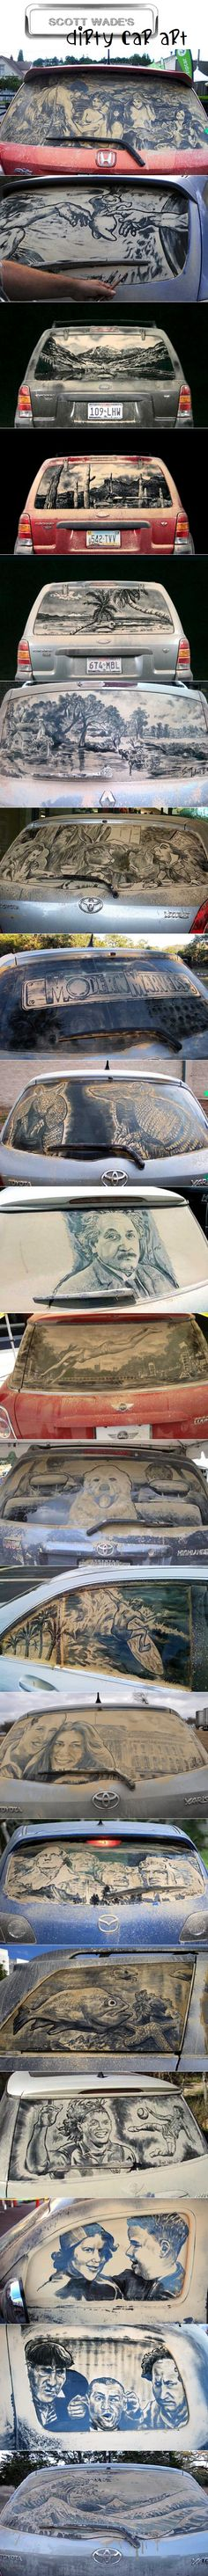 "Check out these really cool ""Dirty Car Art"" pictures.to wash my car, or NOT to wash my car.that is the question! Performance Artistique, Street Art, Wow Art, Psychedelic Art, Oeuvre D'art, Art Pictures, Amazing Art, Awesome, Art Drawings"